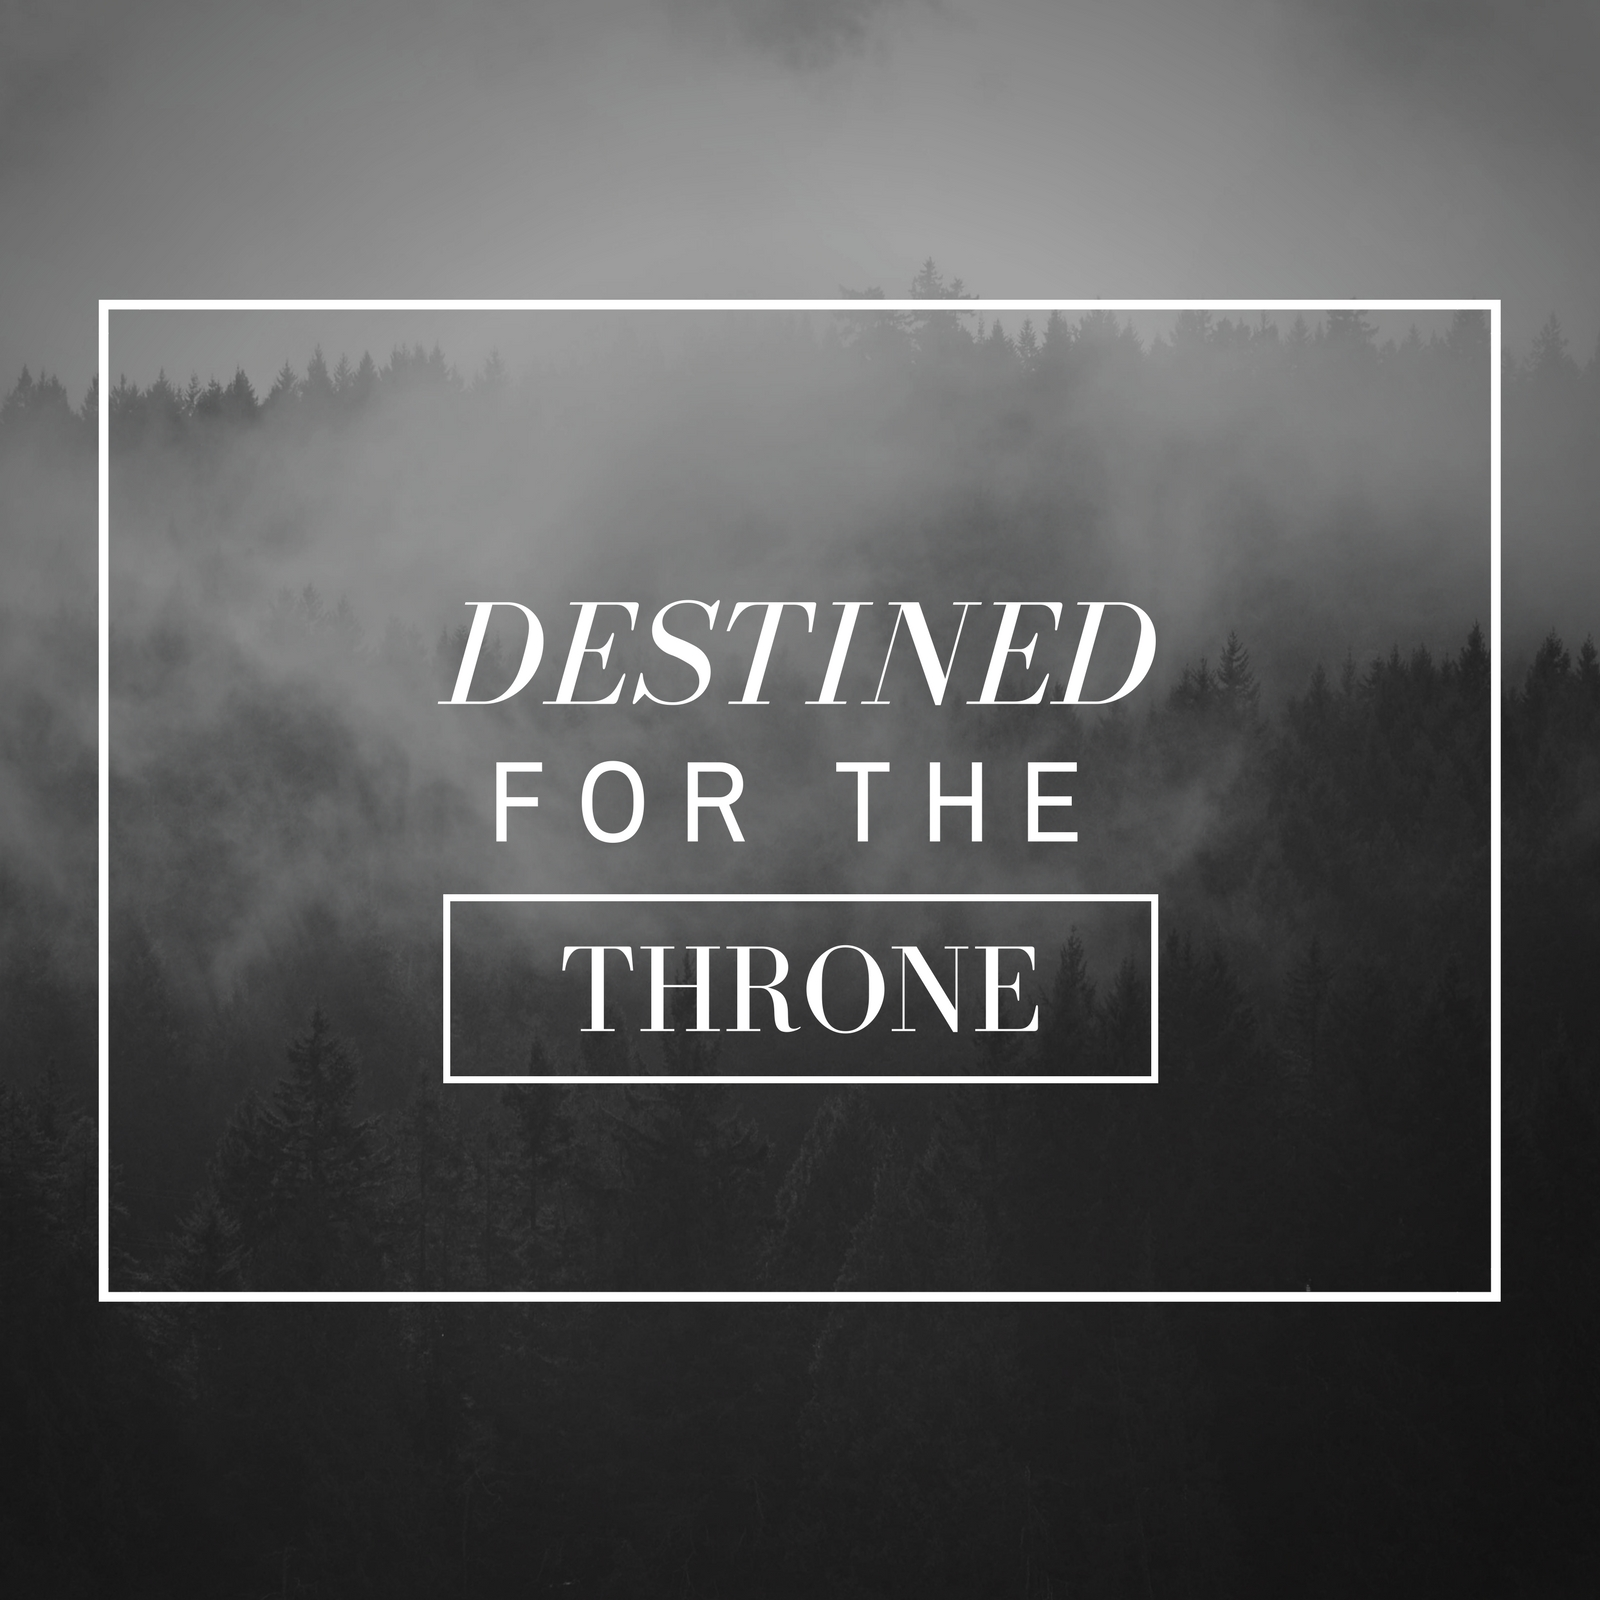 Destined for the Throne 4